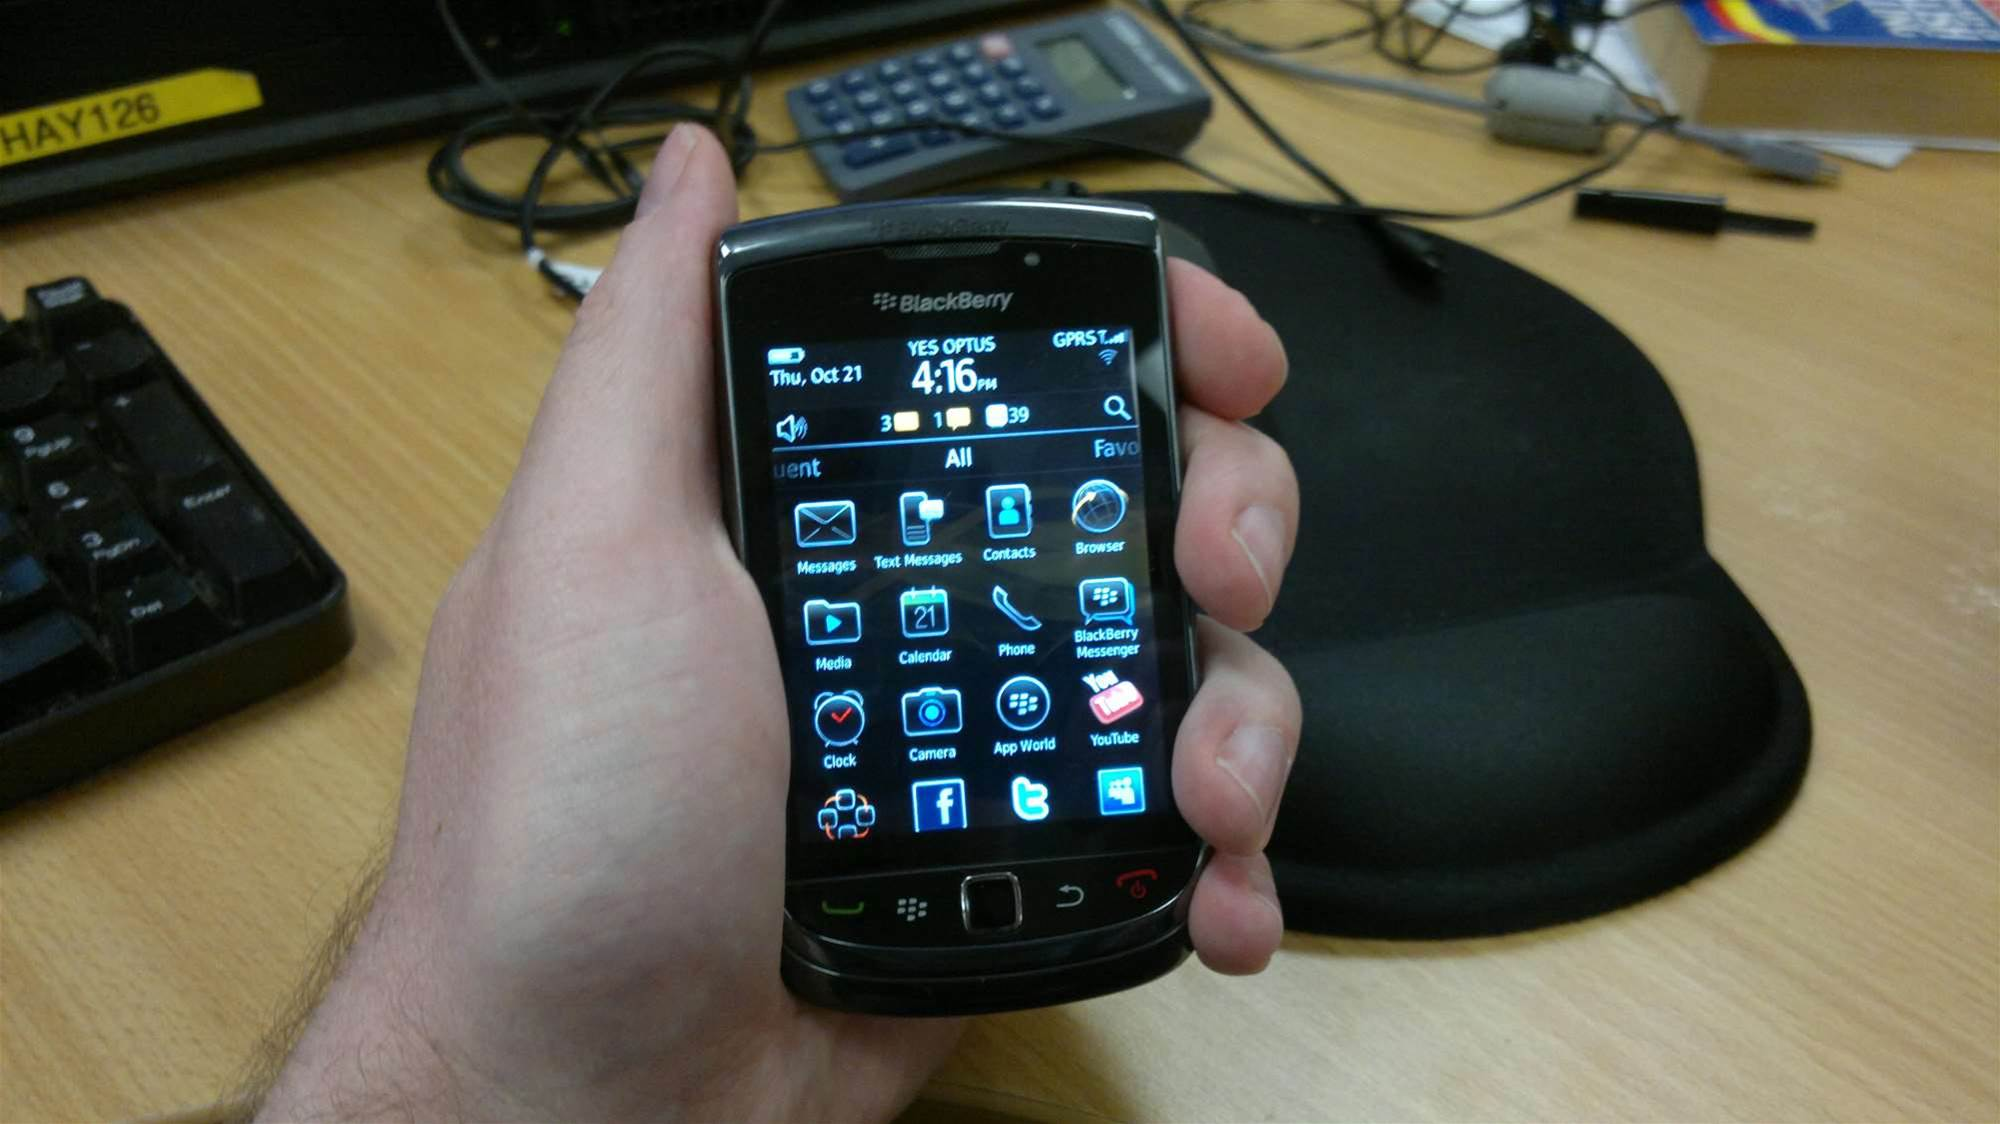 Hands-on: Blackberry Torch 9800